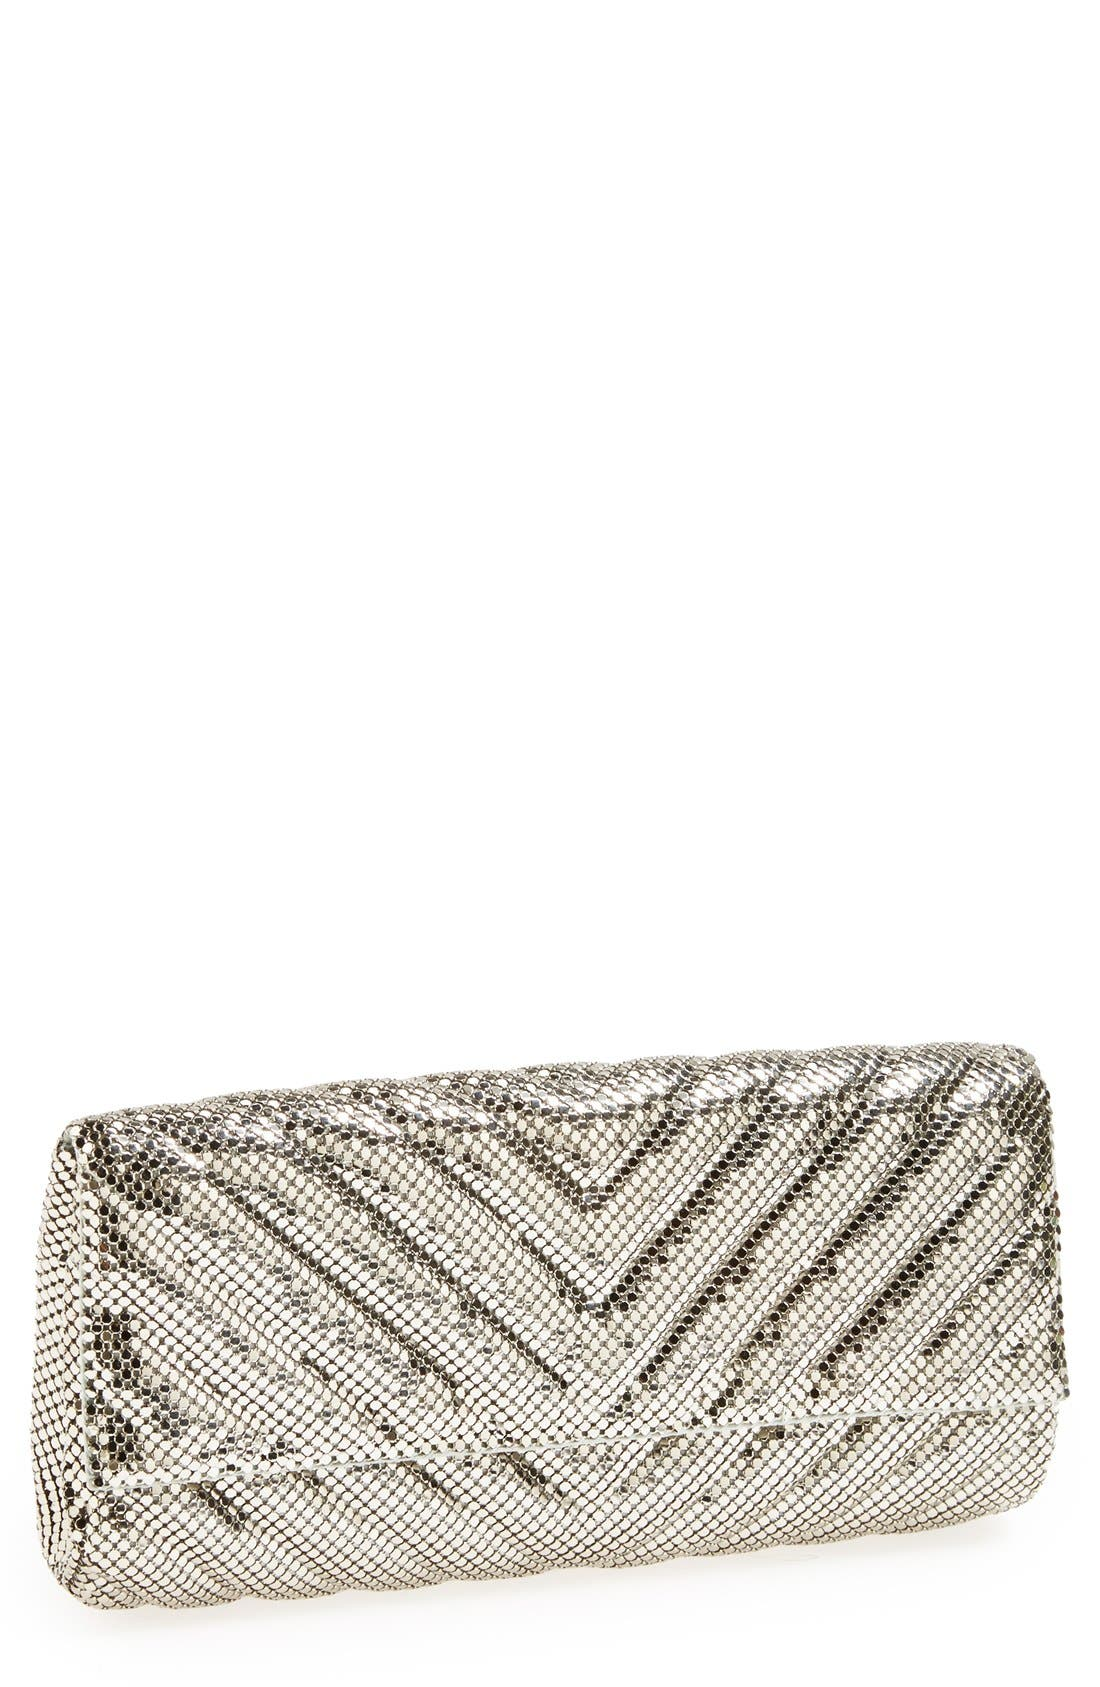 Main Image - Whiting & Davis Quilted Chevron Clutch